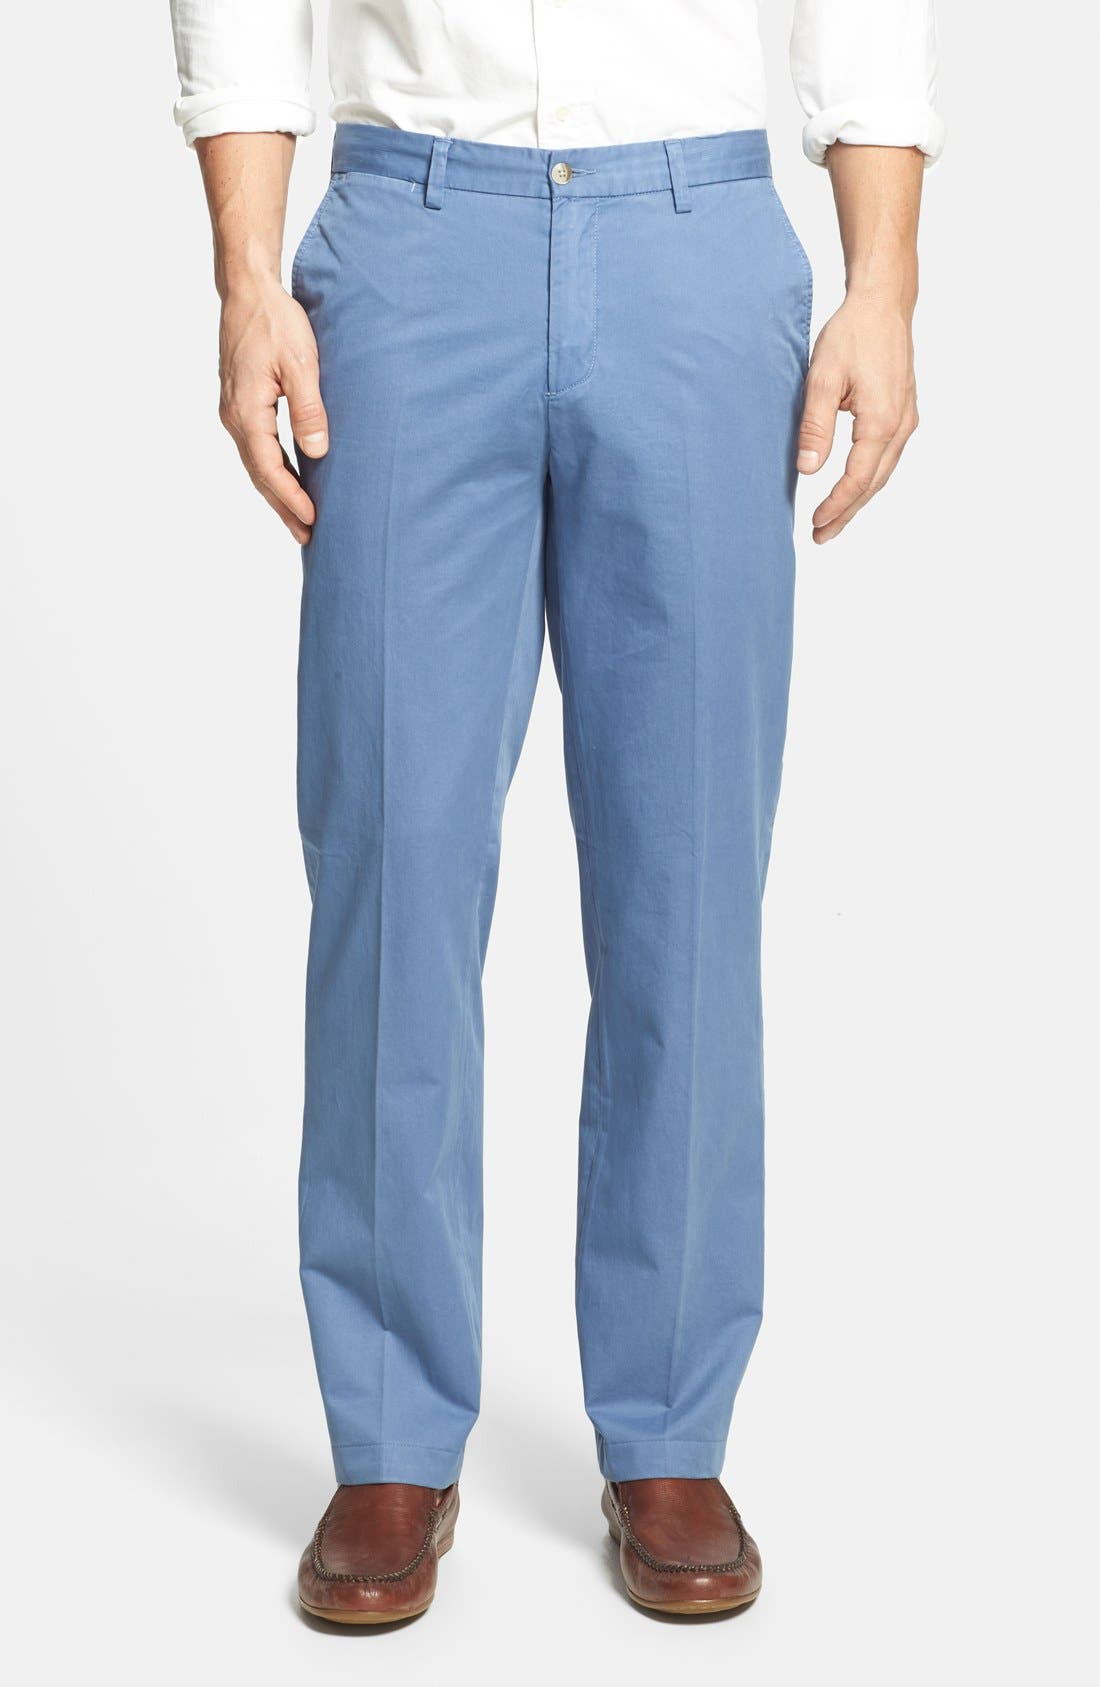 Alternate Image 1 Selected - Maker & Company 'Keck' Easy Fit Flat Front Trousers